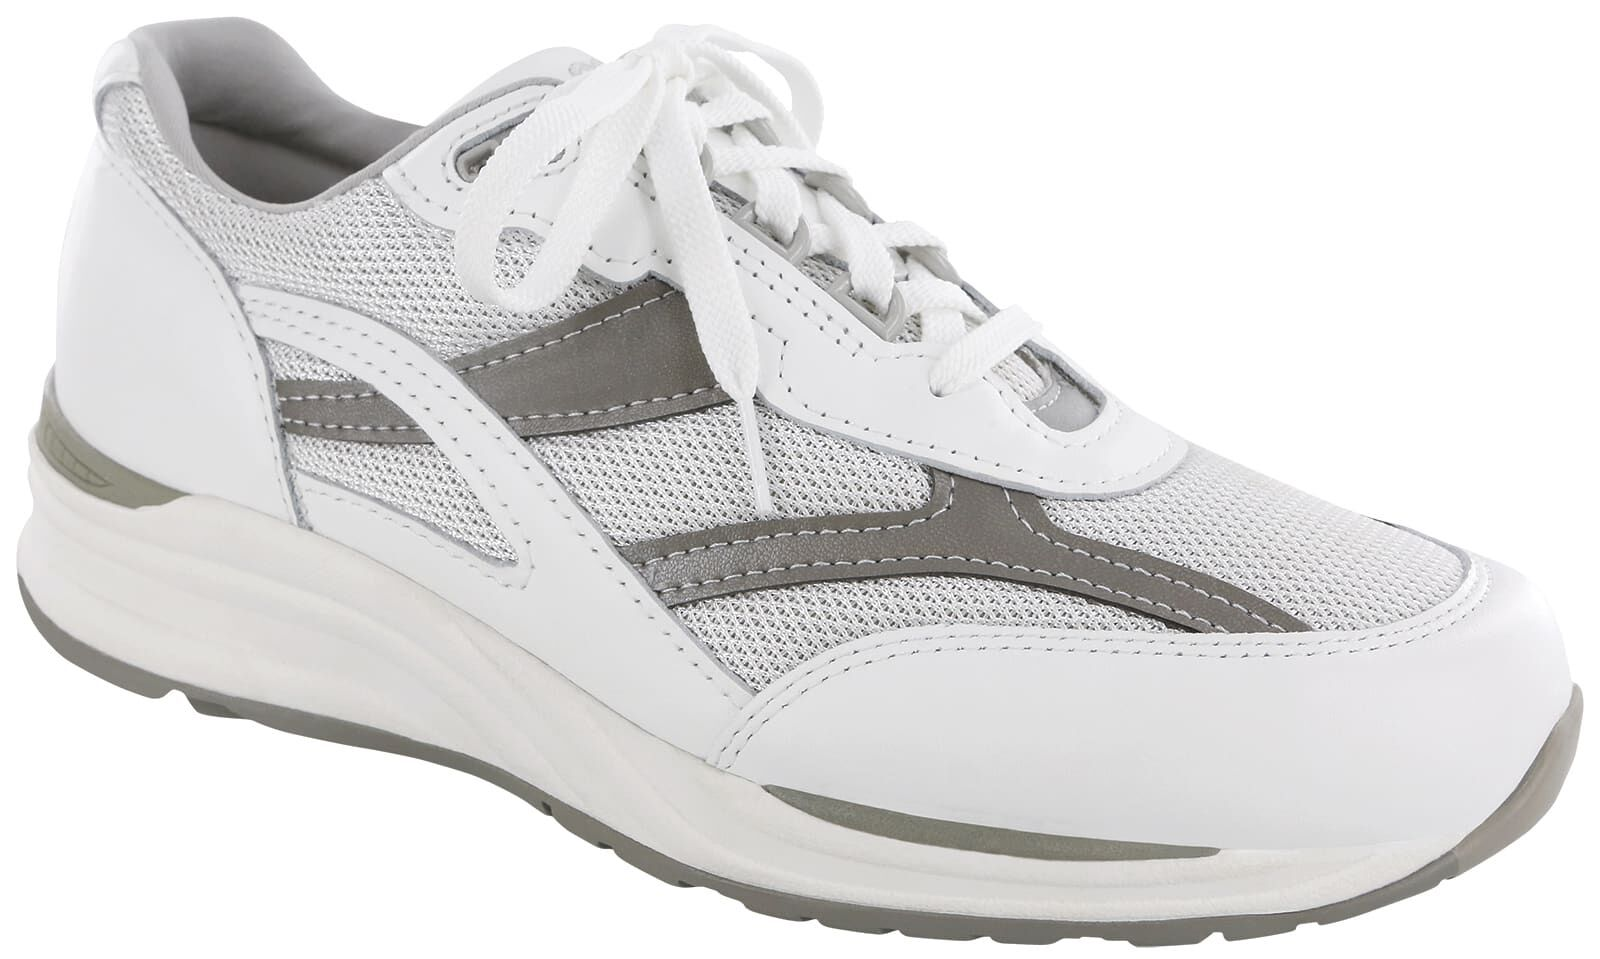 Lace SneakerSas Mesh Journey Shoes Up sCBrdxQth